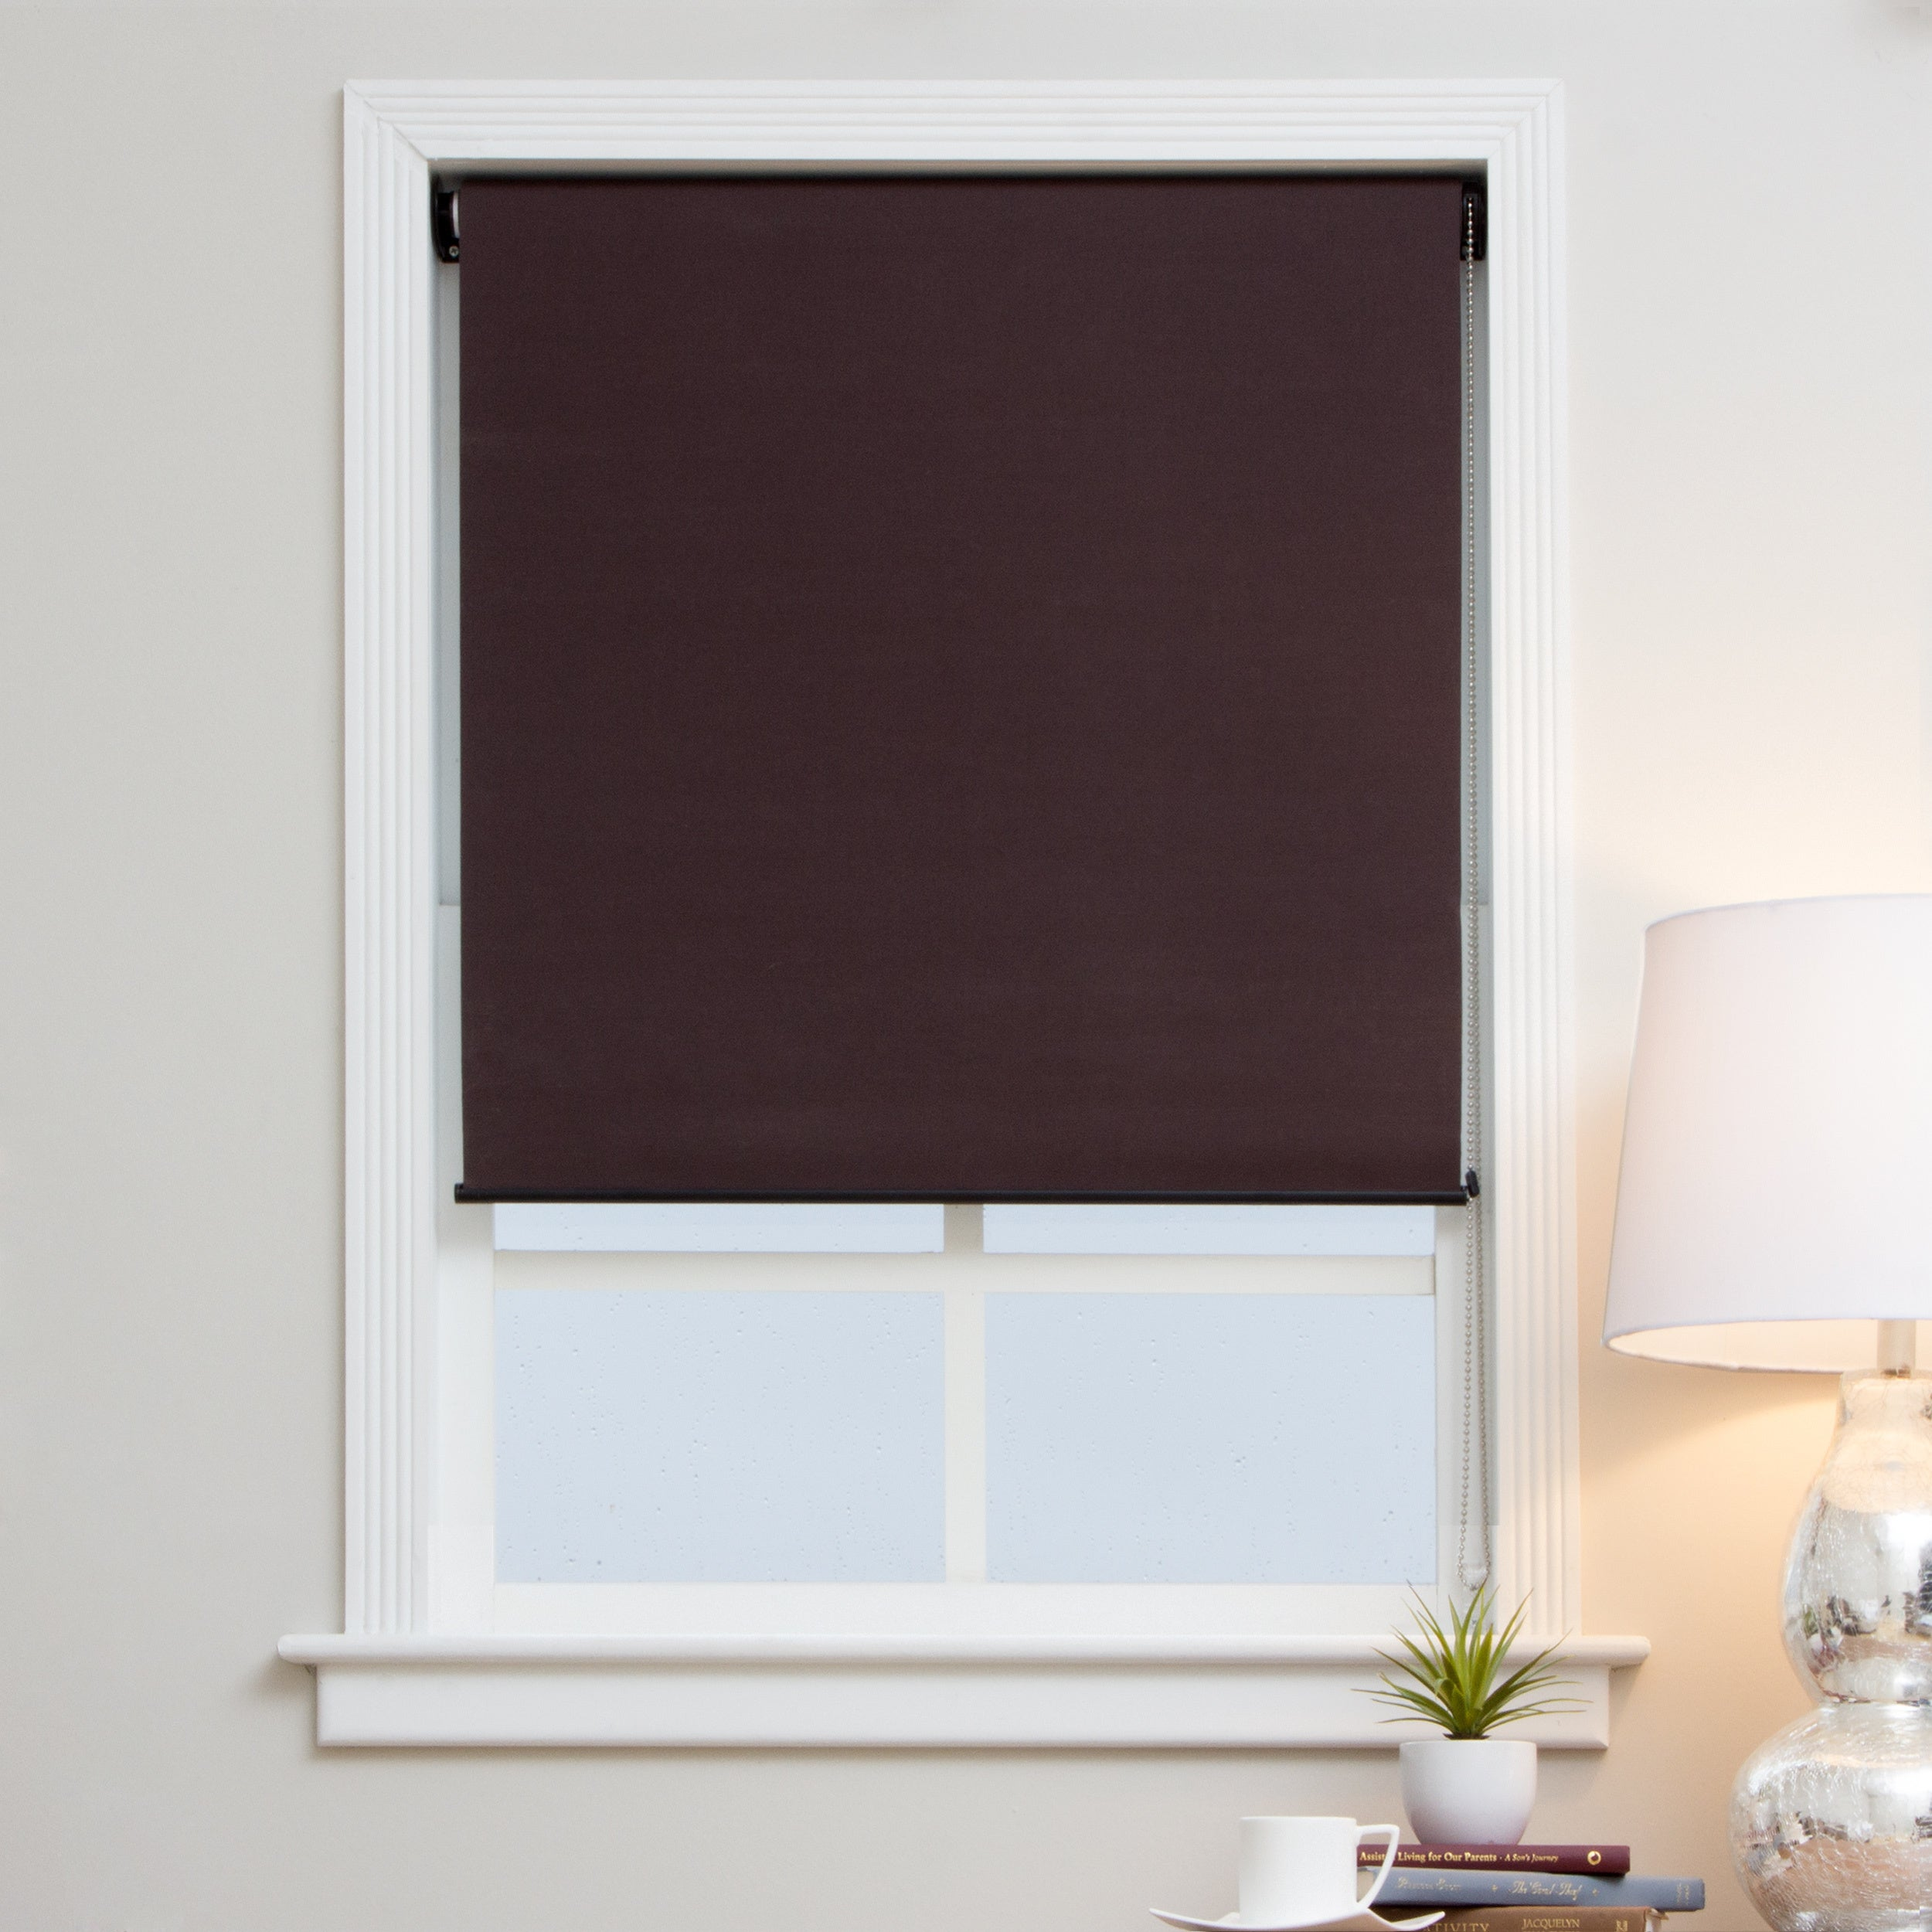 window blinds blind sun roll shade home living blackout up fabric outsunny roller outdoor